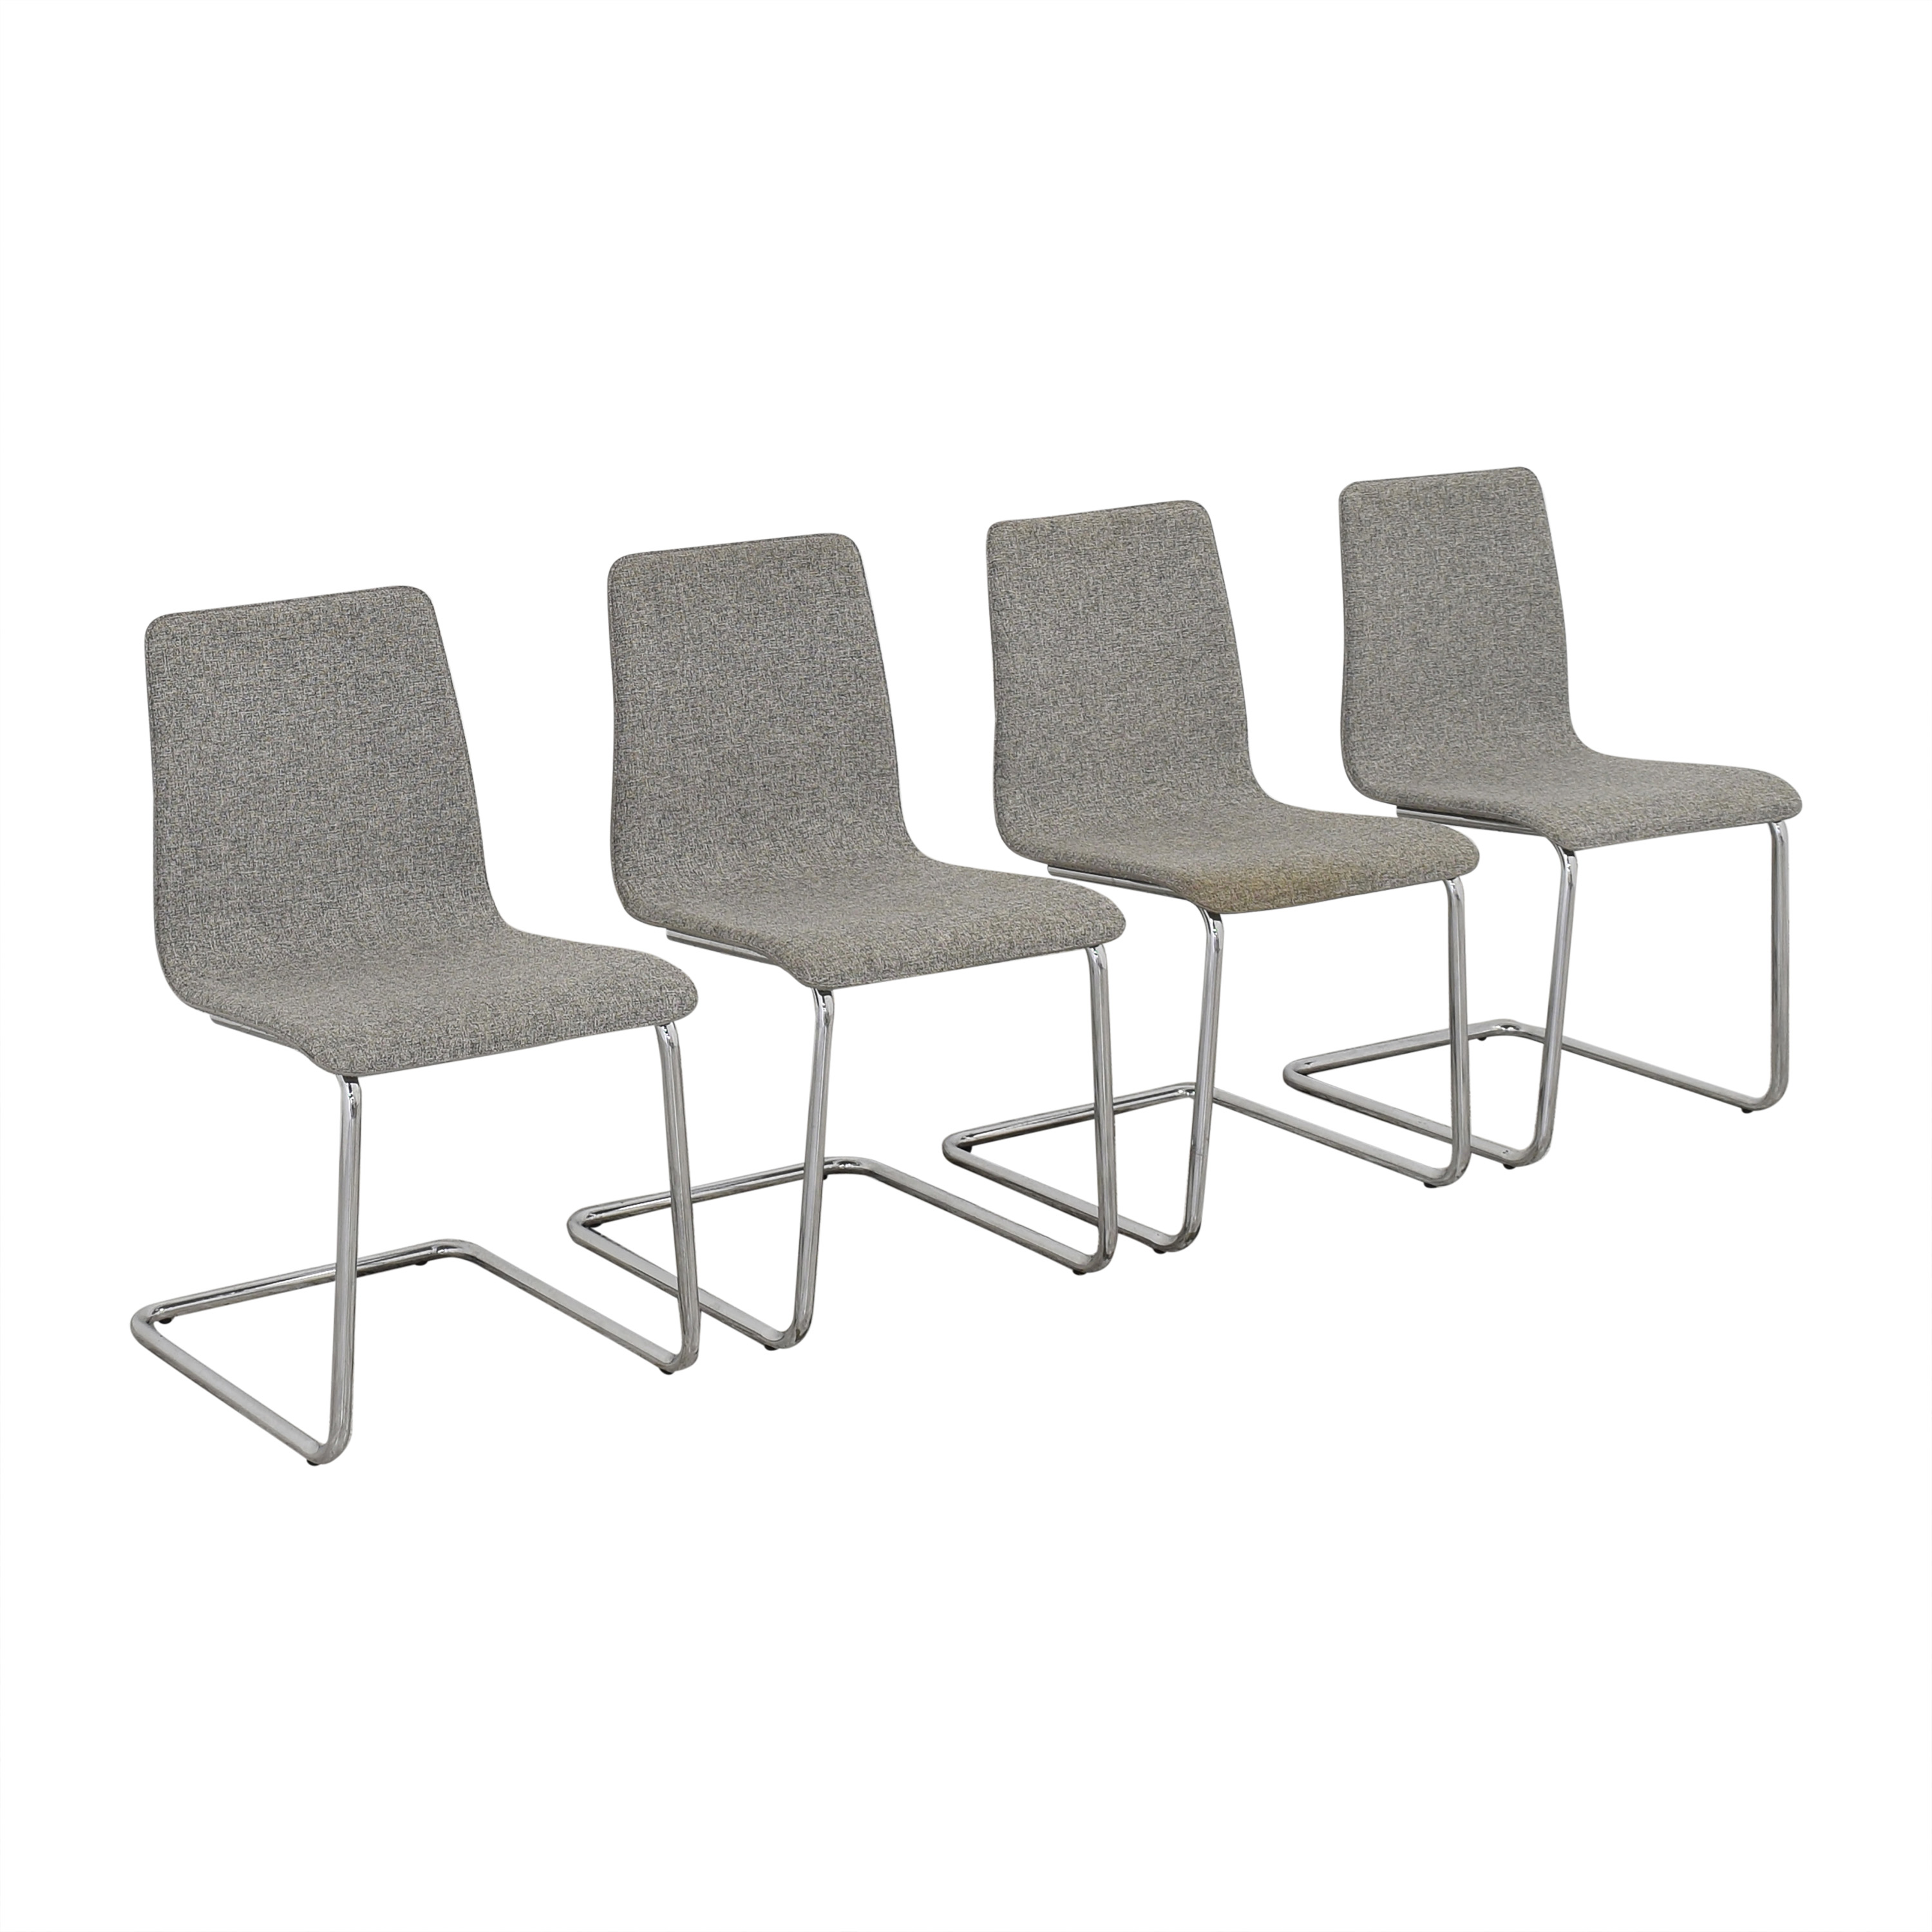 CB2 CB2 Pony Tweed Chairs Accent Chairs